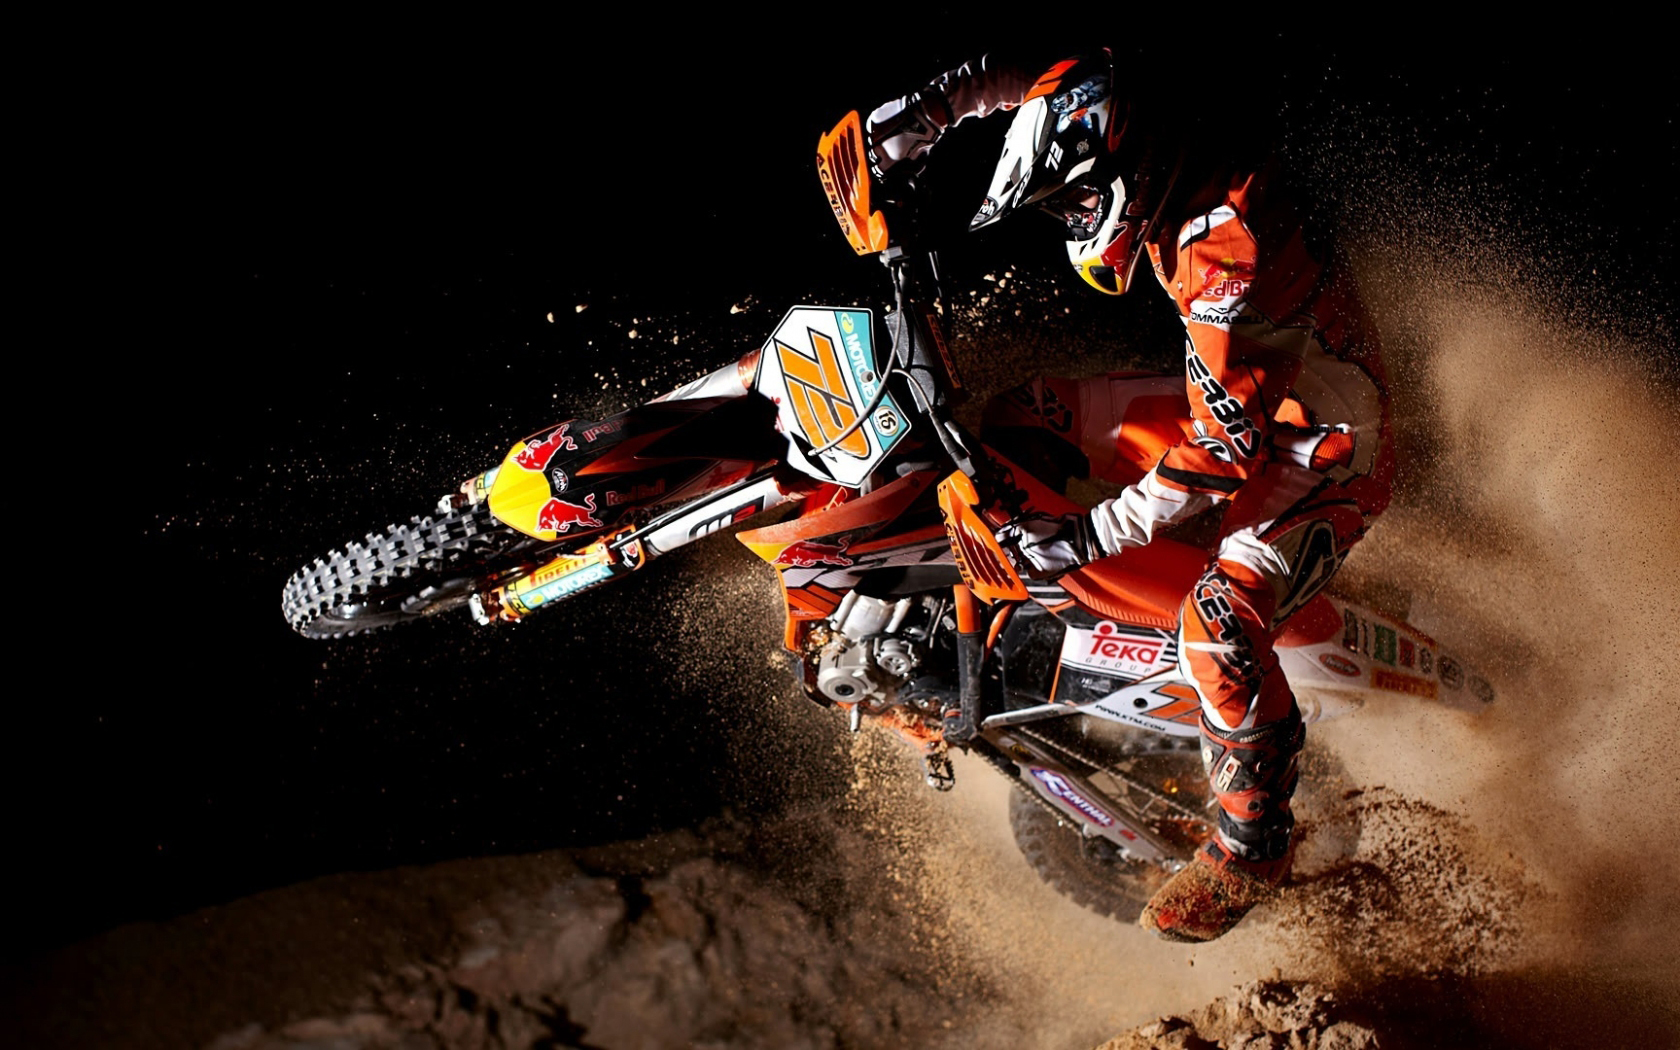 motocross motorcycles dirt track racing race ktm bike wallpaper 1680x1050